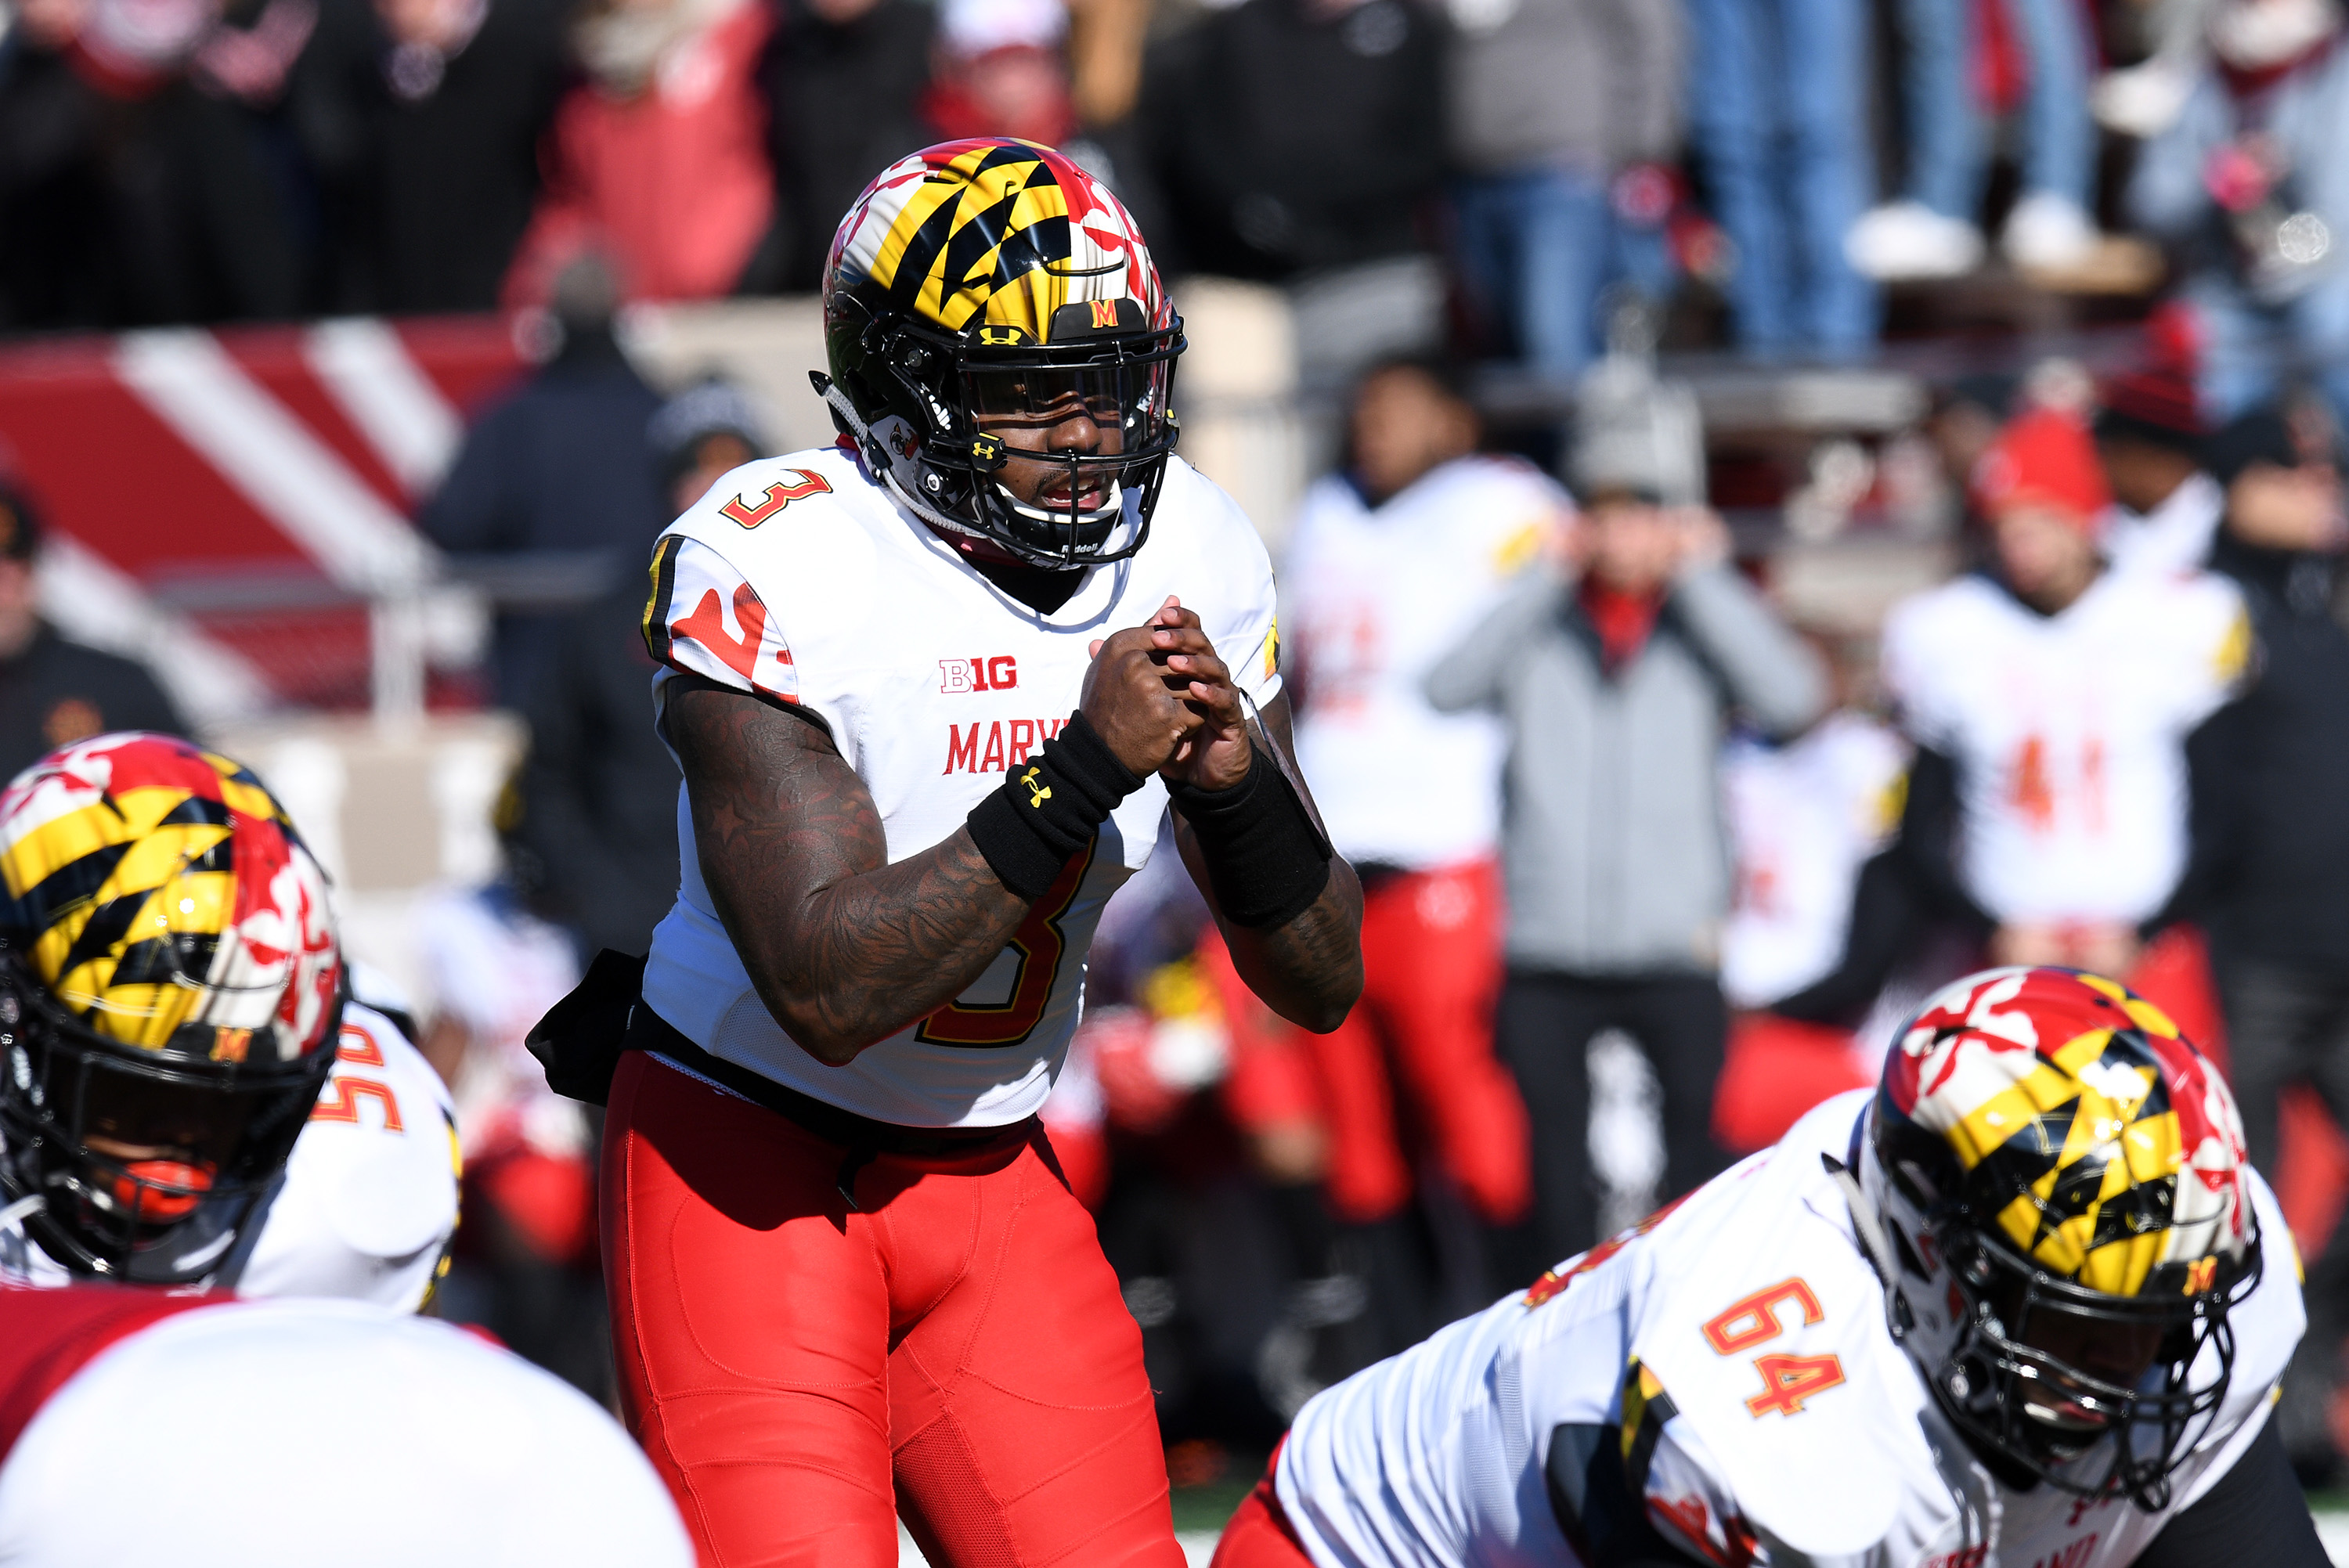 COLLEGE FOOTBALL: NOV 10 Maryland at Indiana